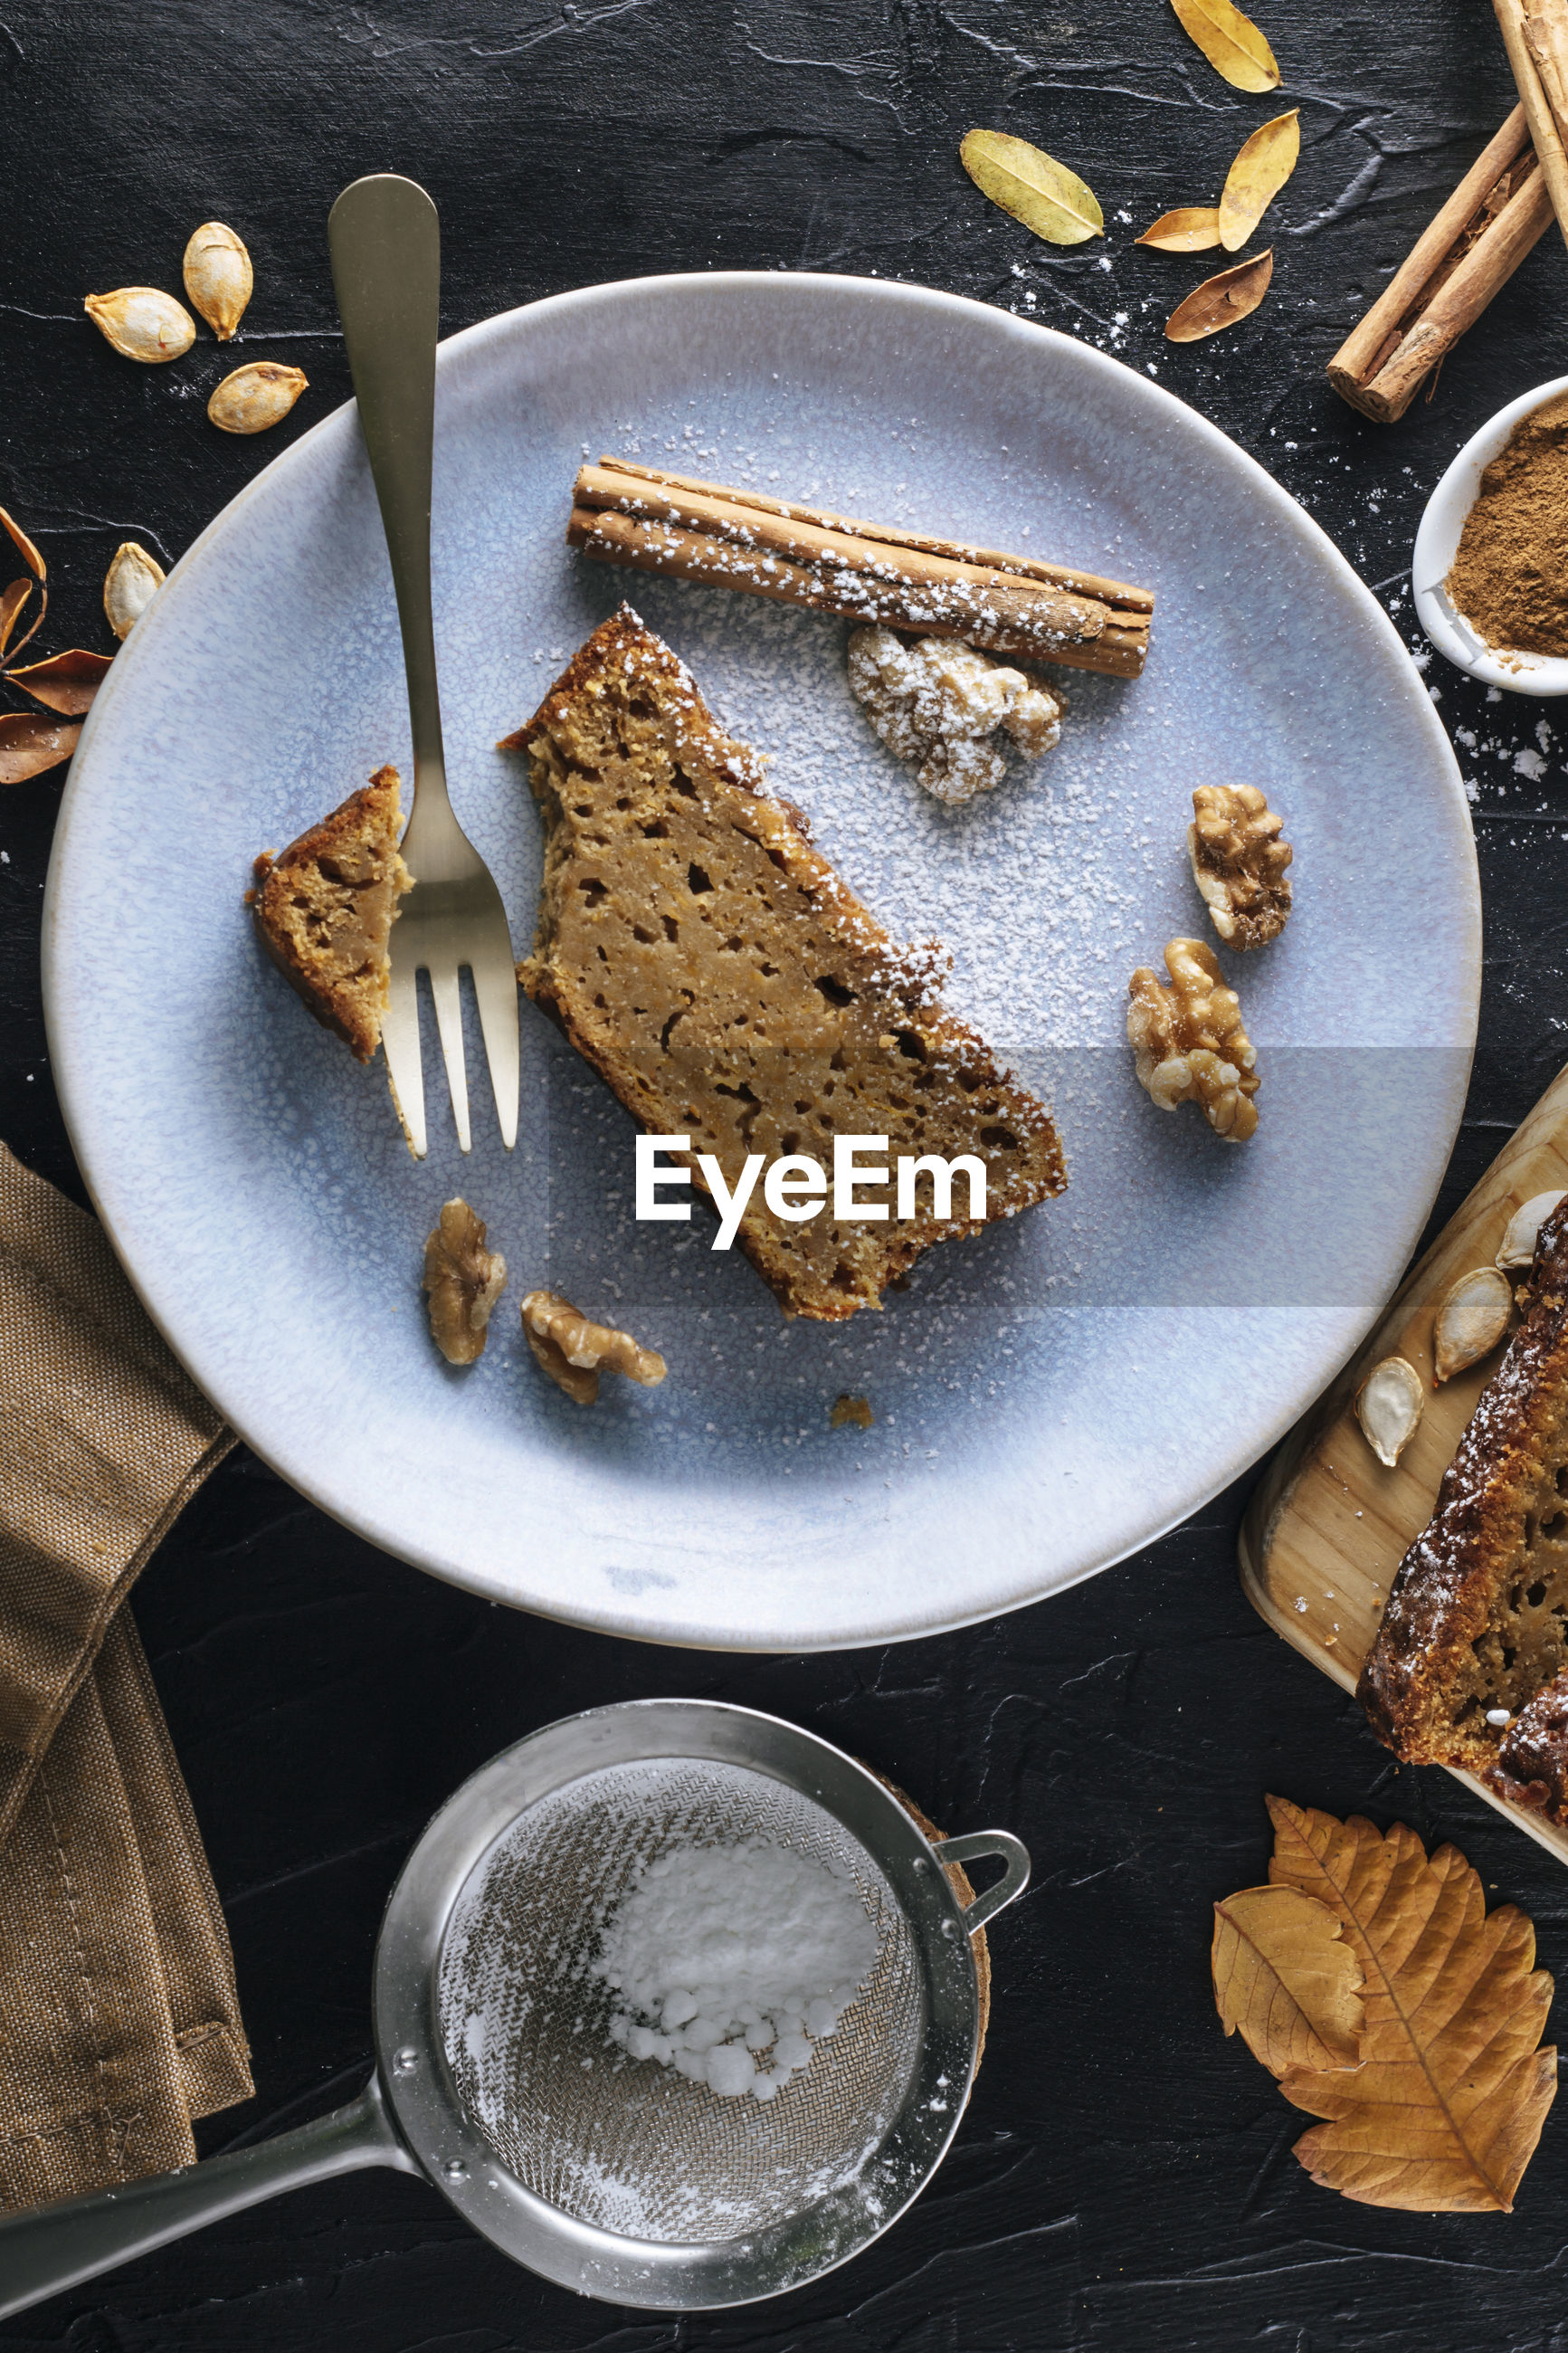 HIGH ANGLE VIEW OF CAKE SLICE IN PLATE